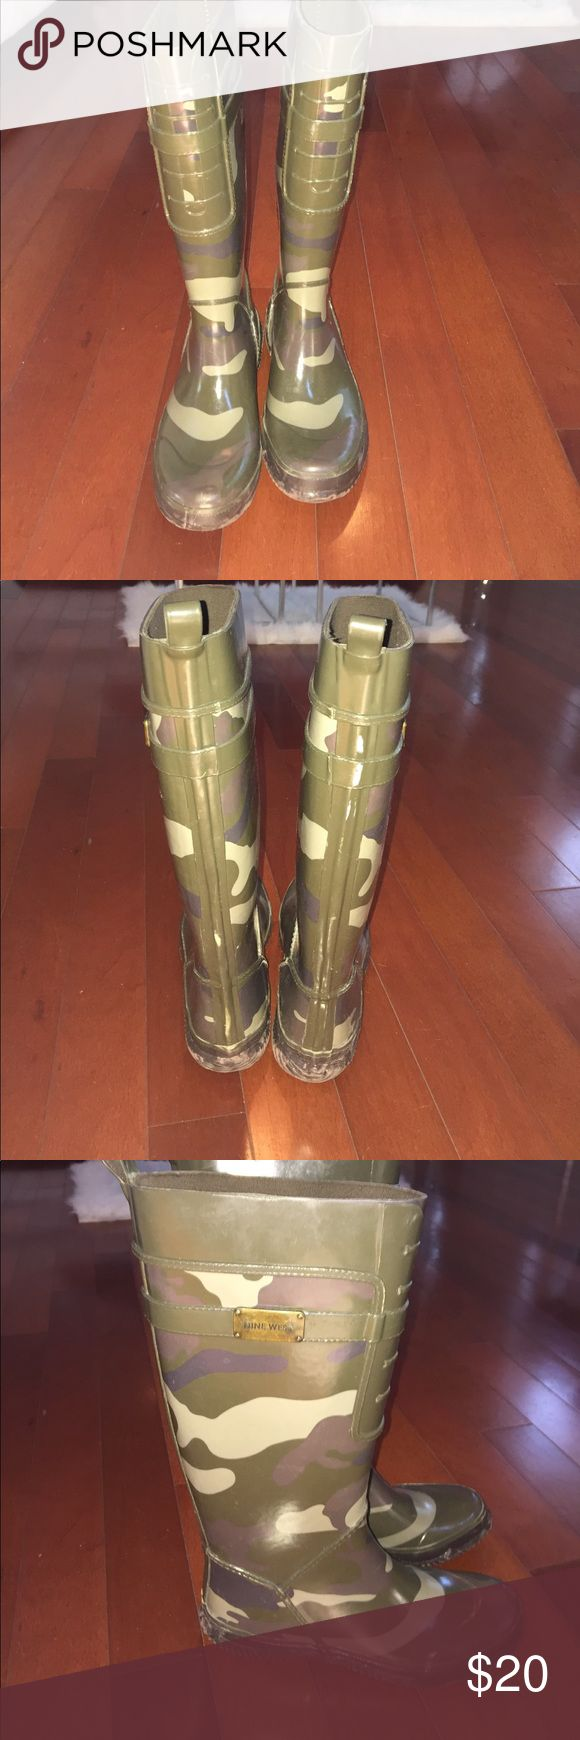 🇺🇸 SALE. ☔️Stay protected with camouflage Welles Stay dry with a cute pair of Nine West camouflage wellies! Nine West Shoes Winter & Rain Boots